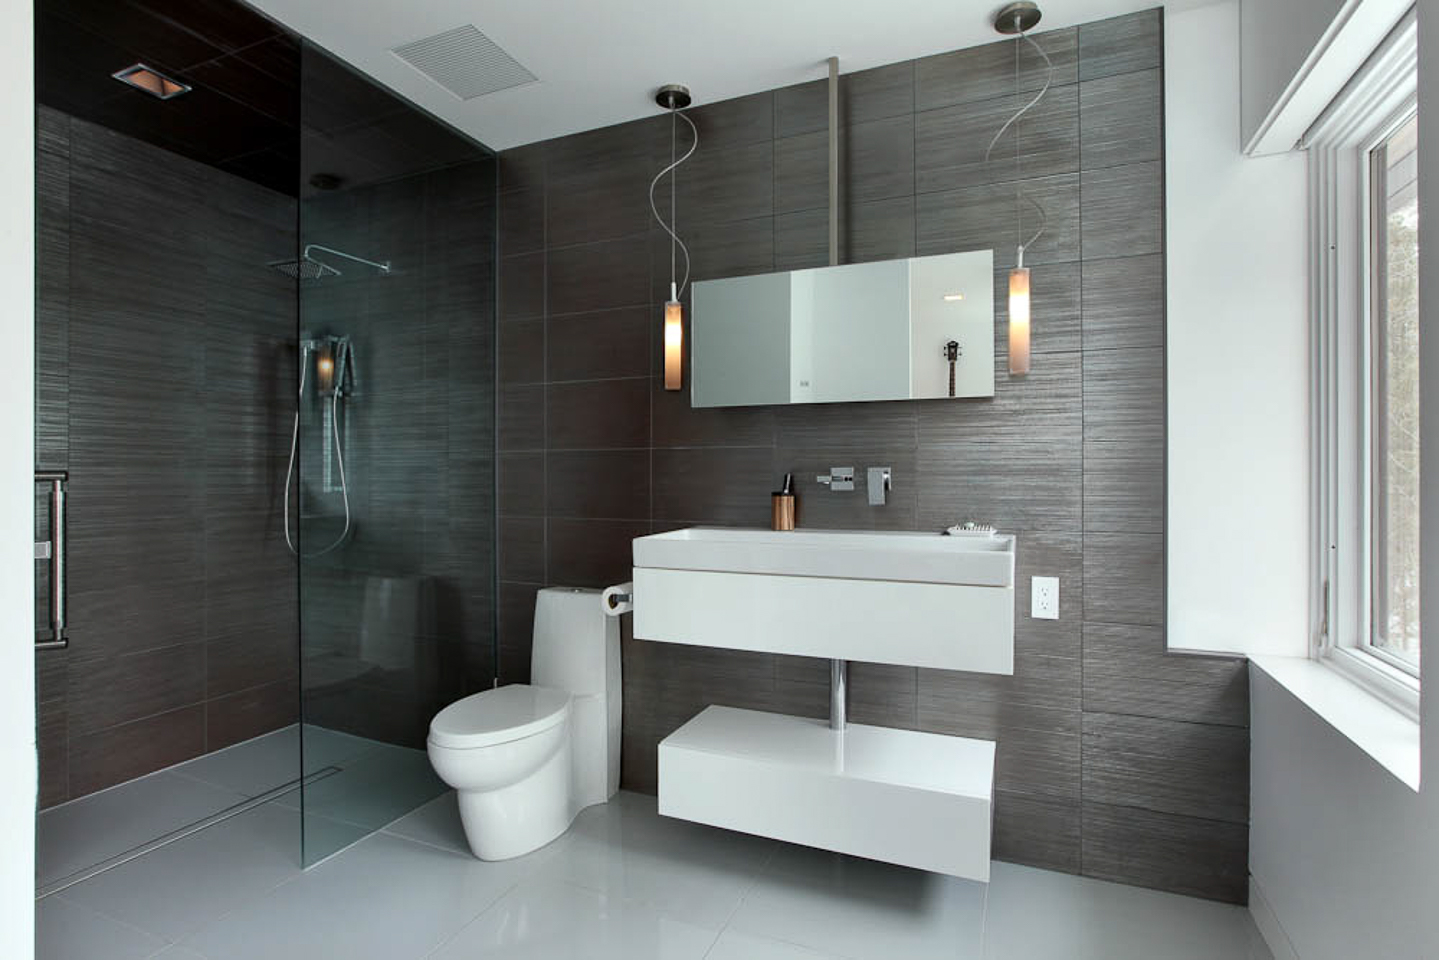 tile showers and baths, backsplashes, features